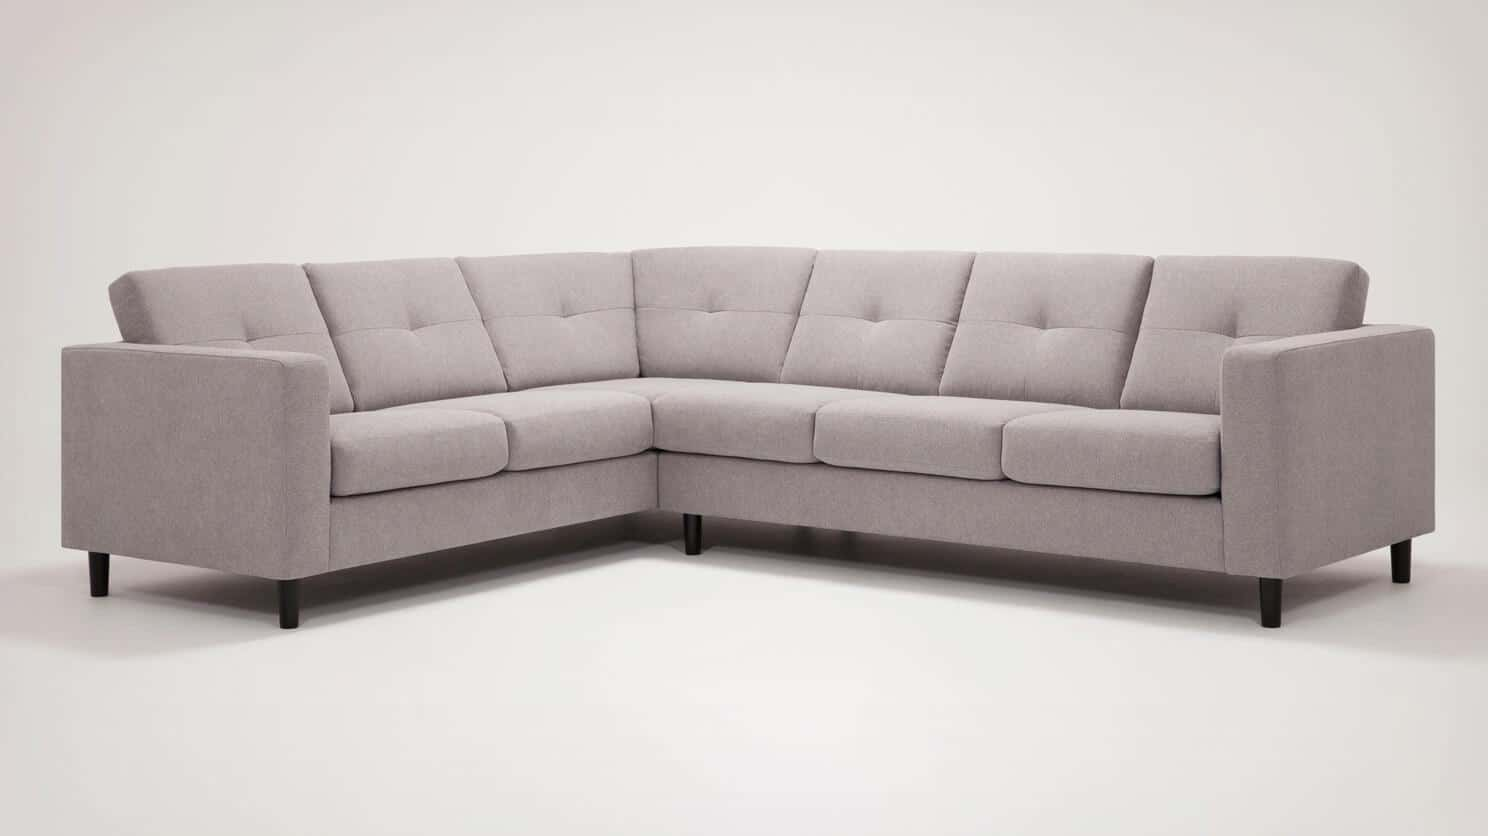 30129 ss s 2 sectionals solo sectional sofa mila silver front 04